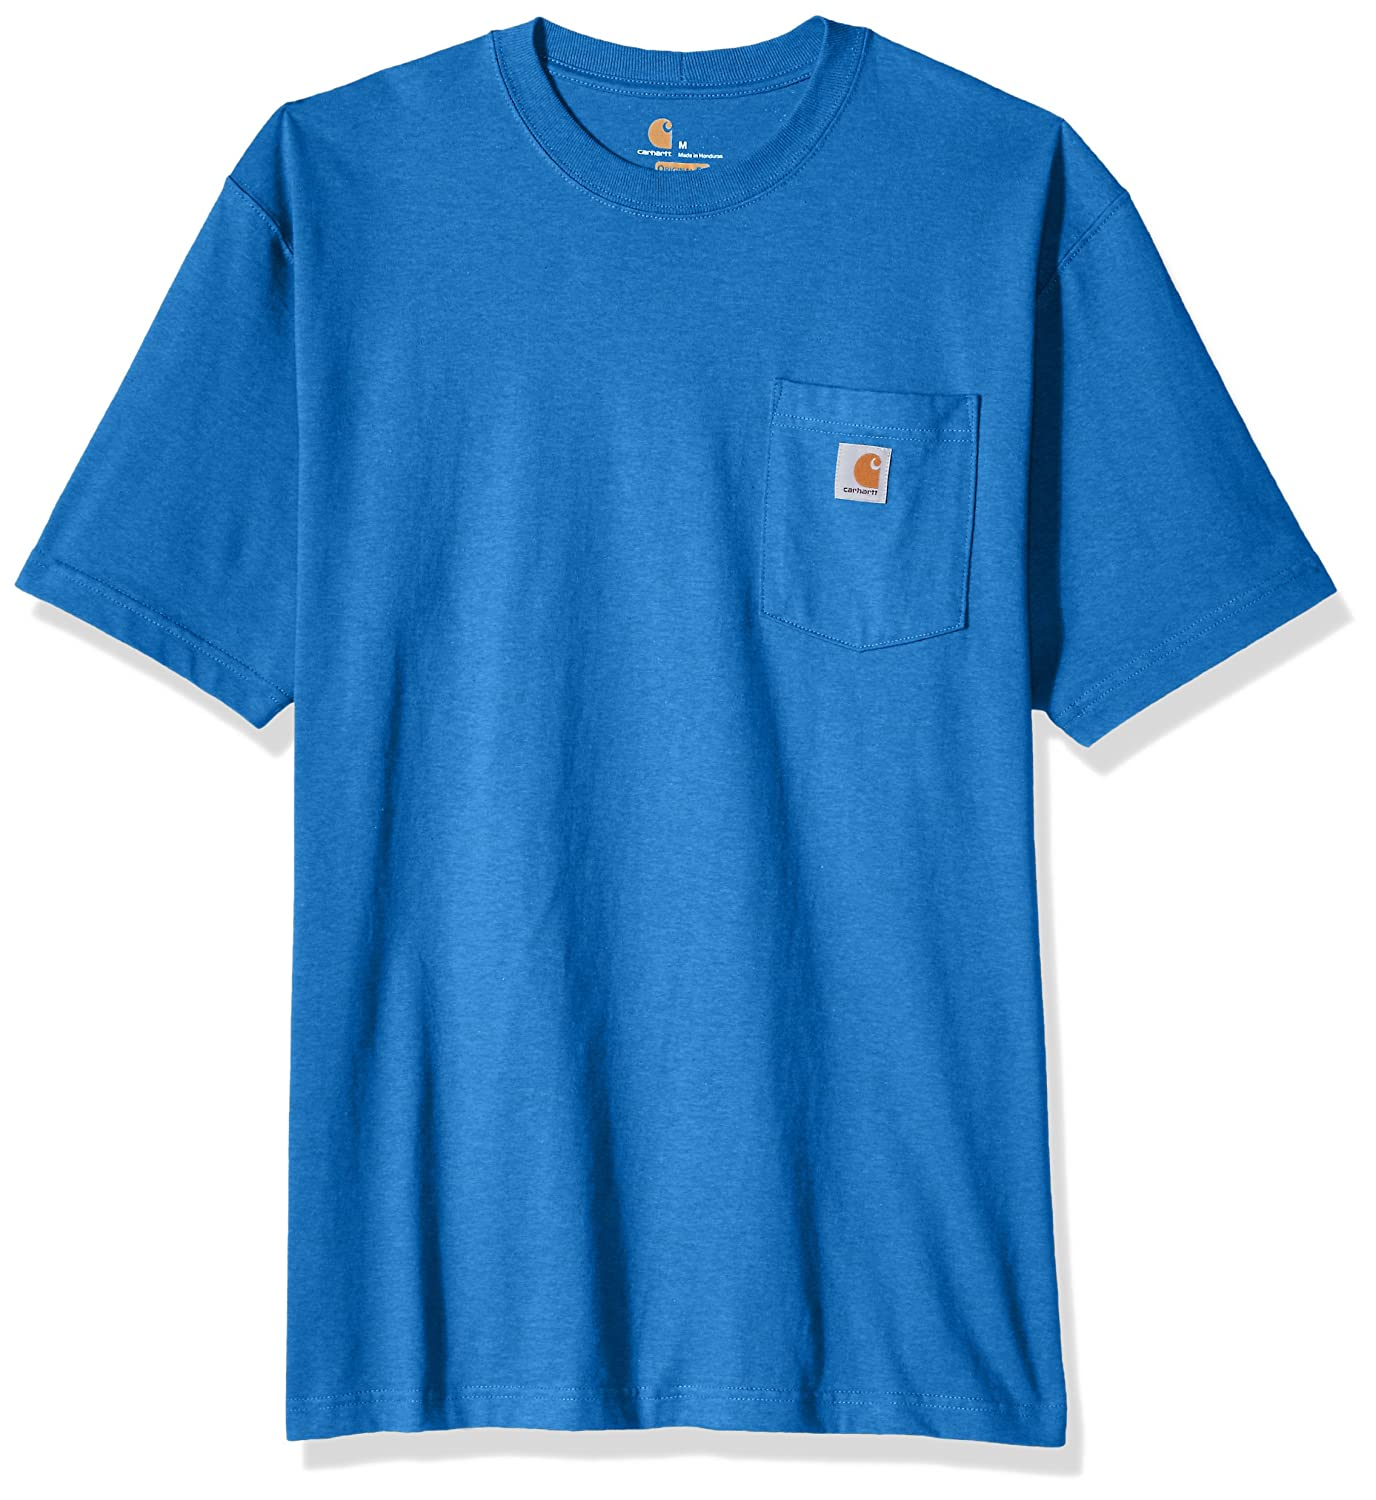 Carhartt SHIRT メンズ B01N6US0EY Small|Cool Blue Heather Cool Blue Heather Small